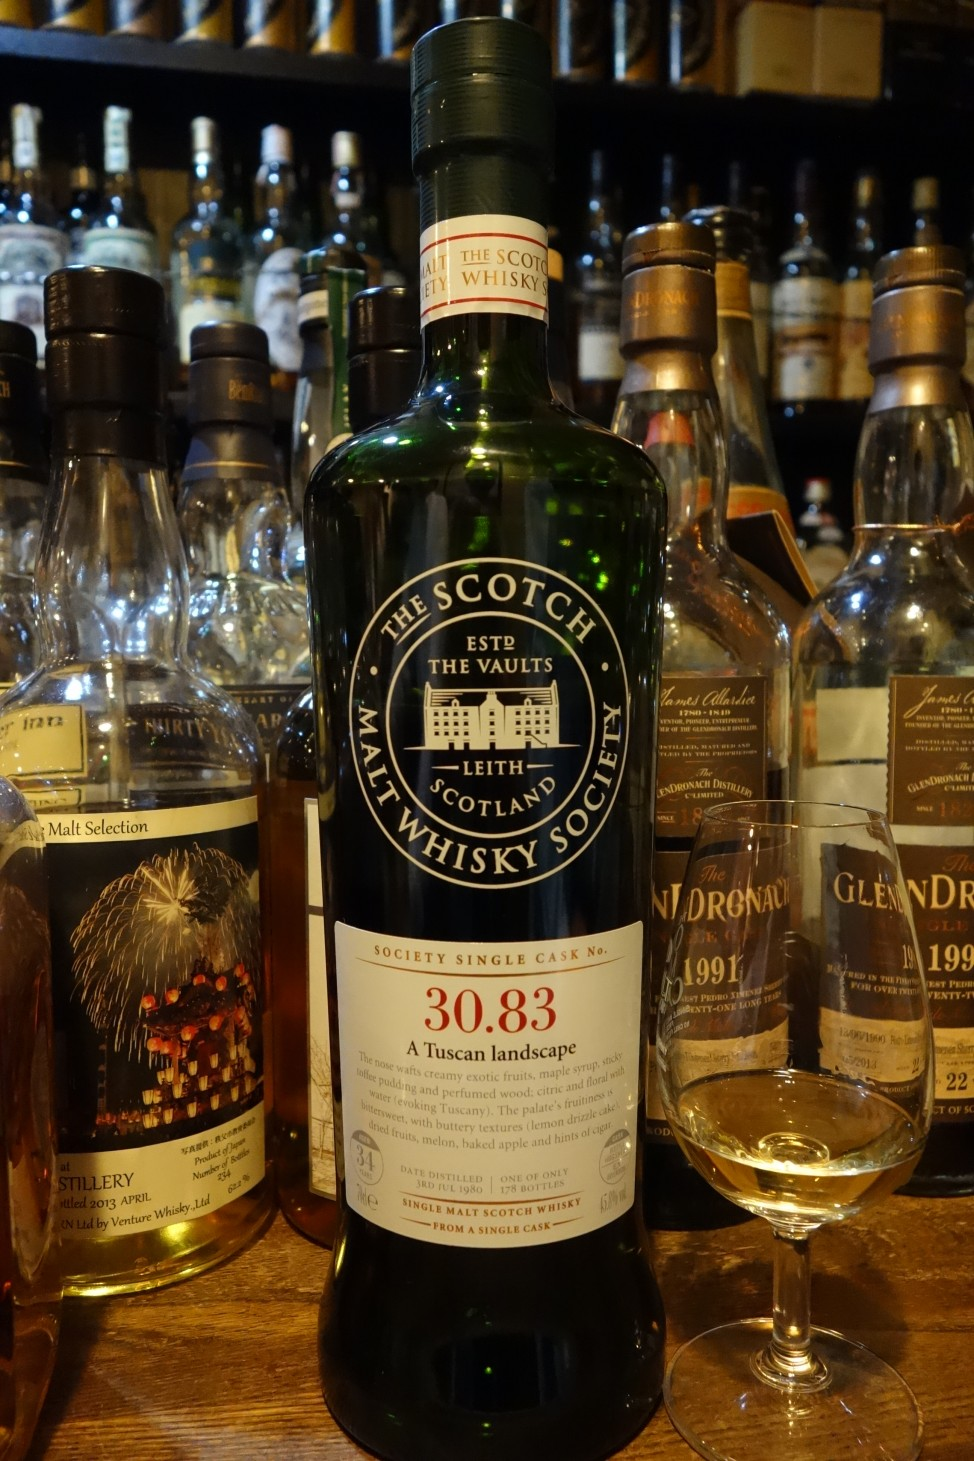 GLENROTHES 1980 34yo THE SCOTCH MALT WHISKY SOCIETY 30.83